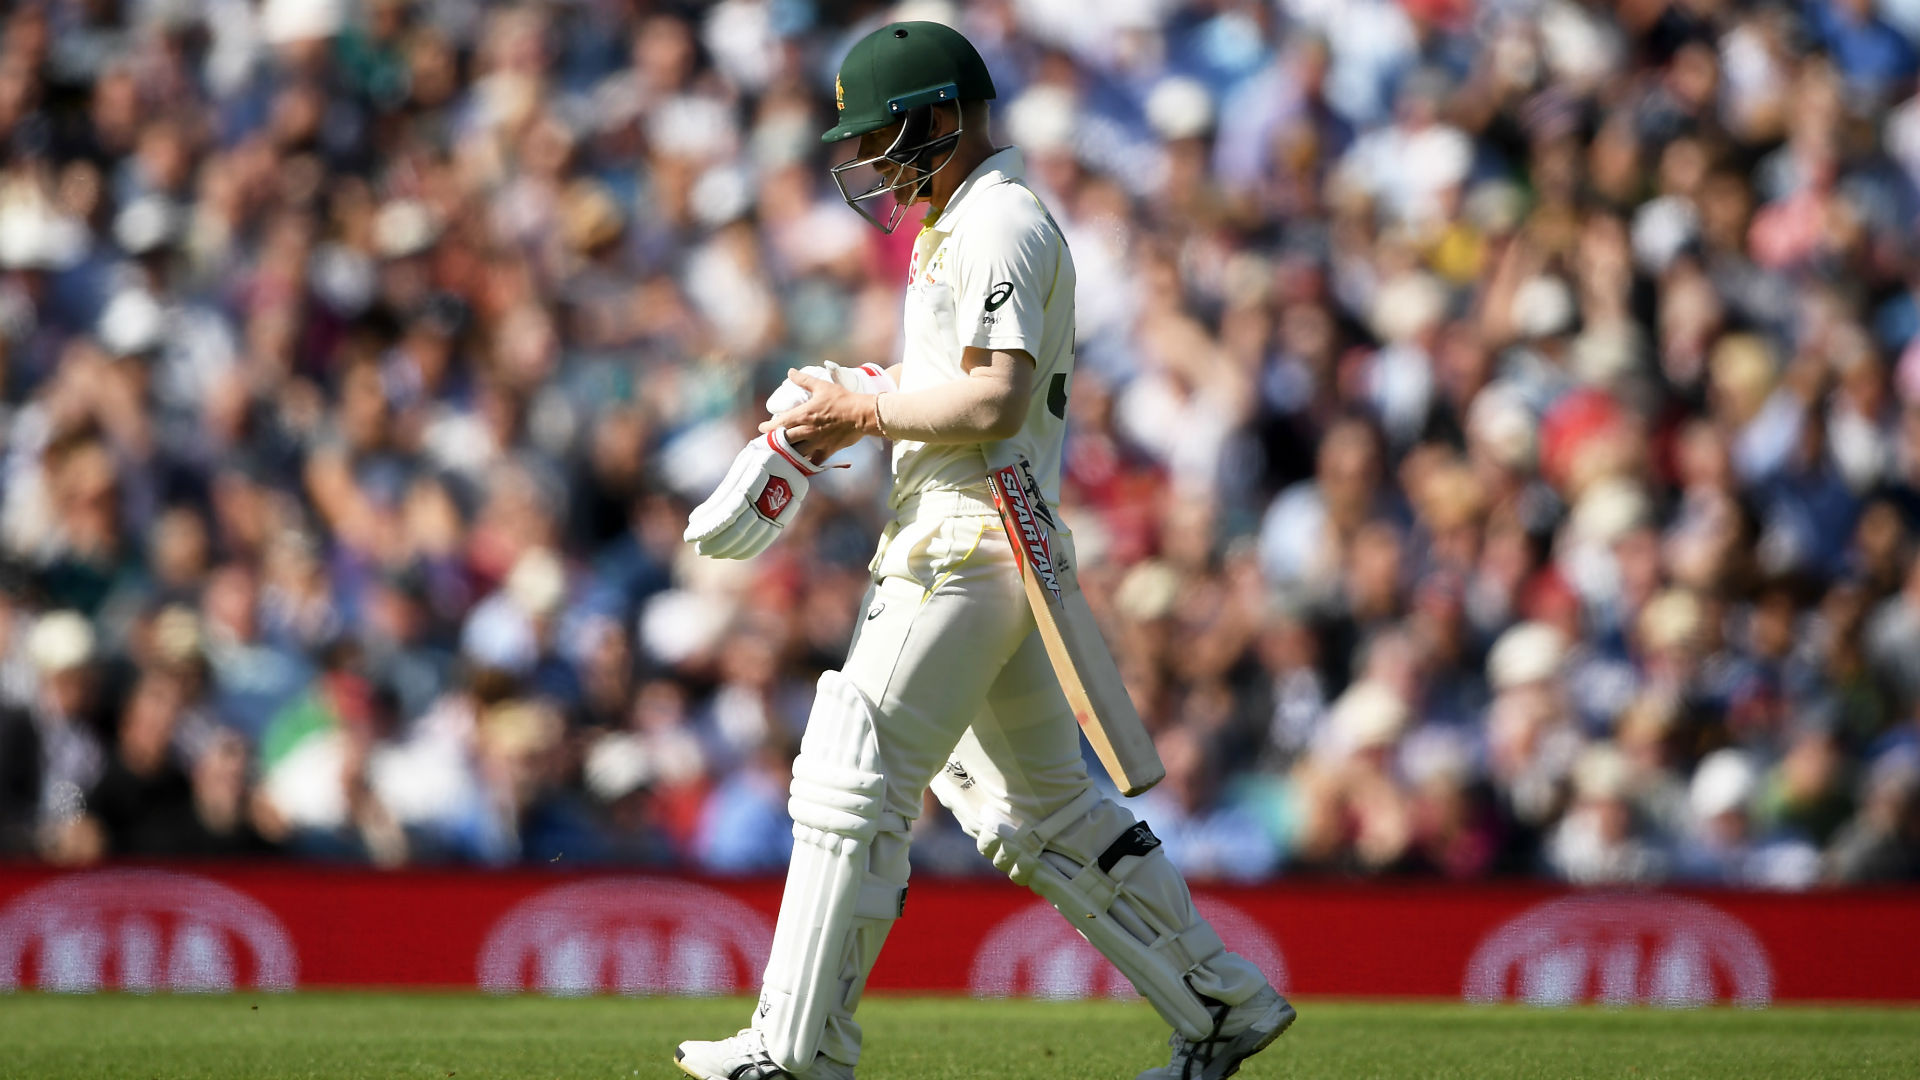 Ashes 2019: Labuschagne and Smith resolute after Warner fails again